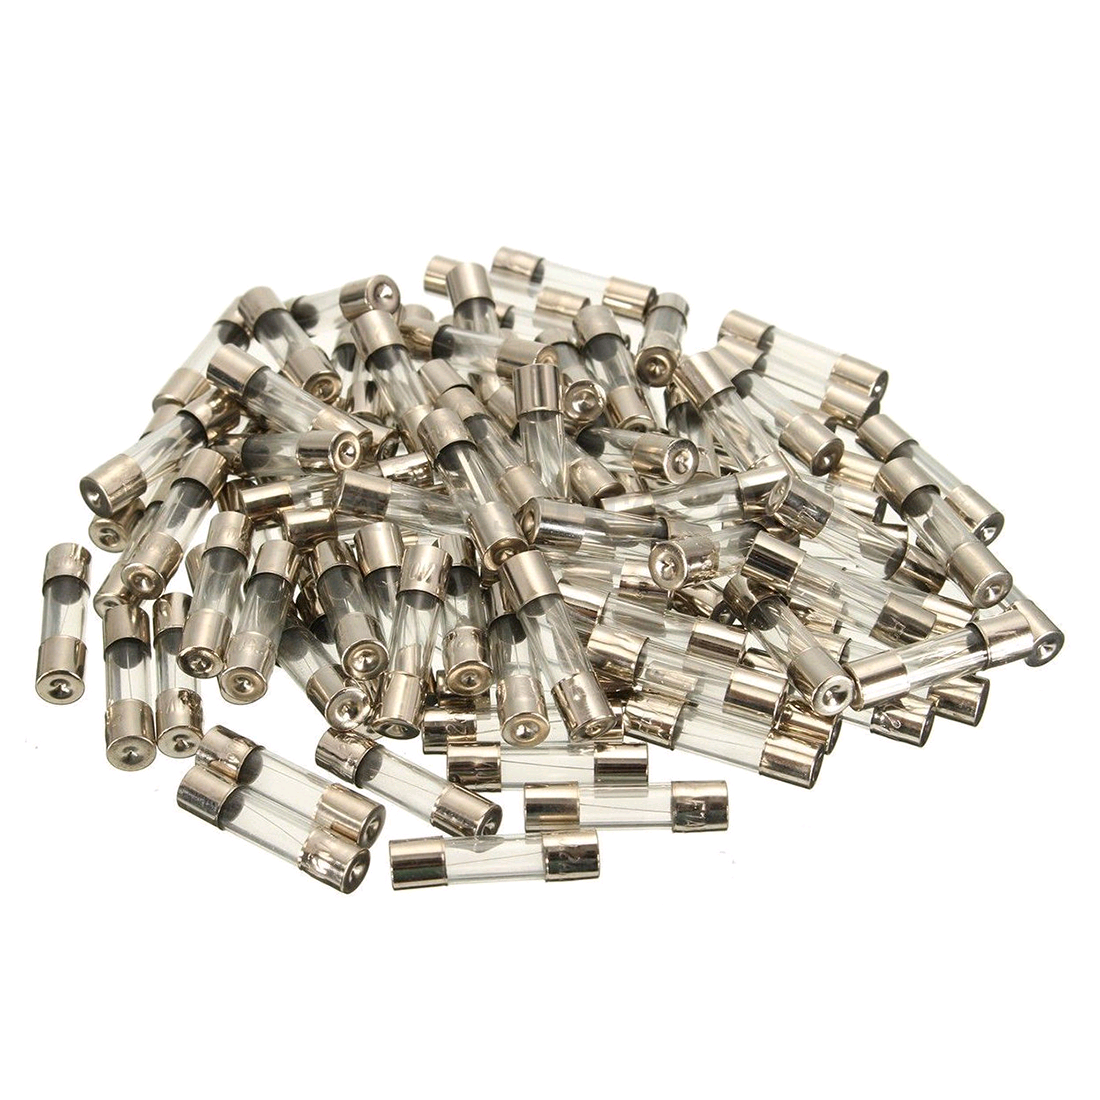 Glass Fuse 2.5a 5 x 20mm (F) Quick Blow Glass 250V